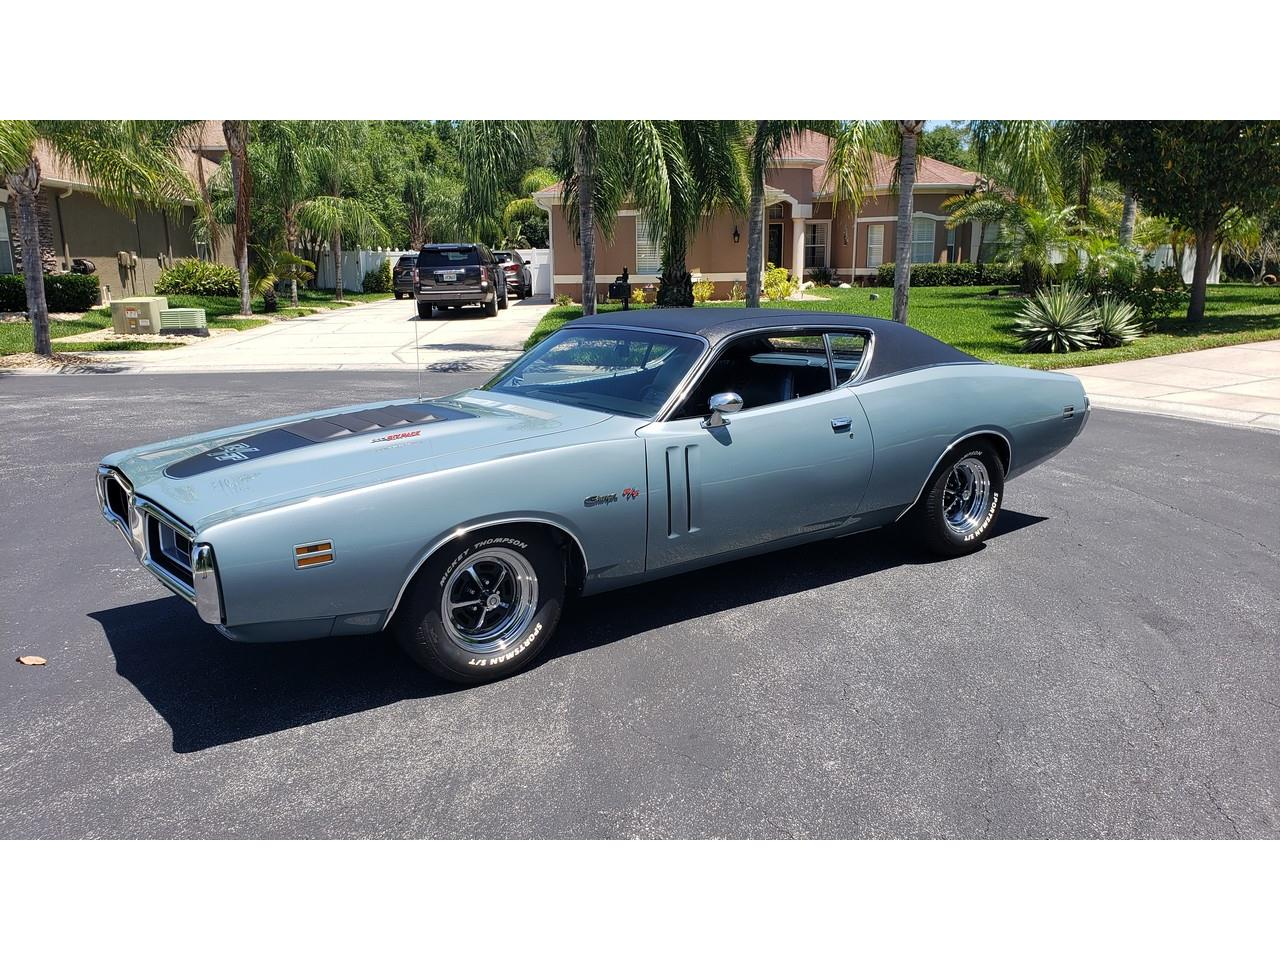 for sale 1971 dodge charger r t in new port richey, florida cars - new port richey, fl at geebo